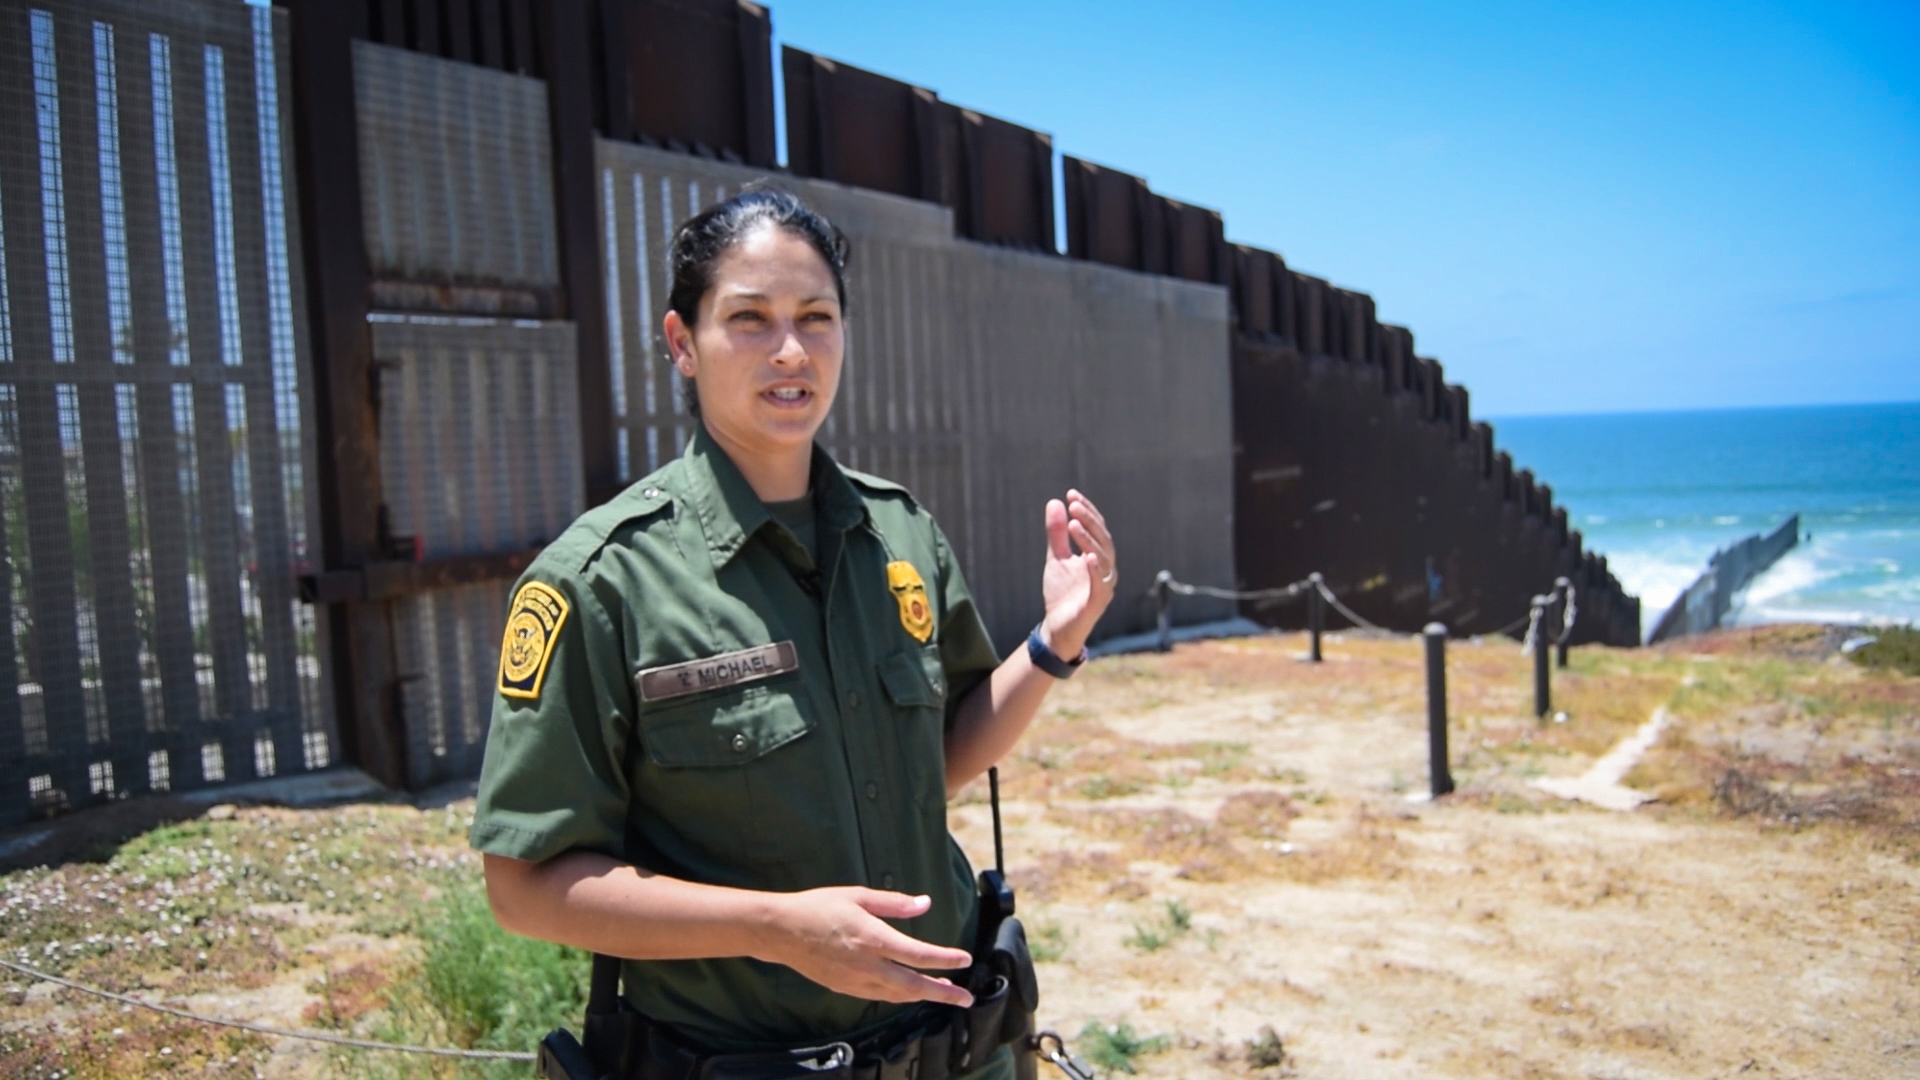 Reports: Border Wall Construction Underway in San Diego, California